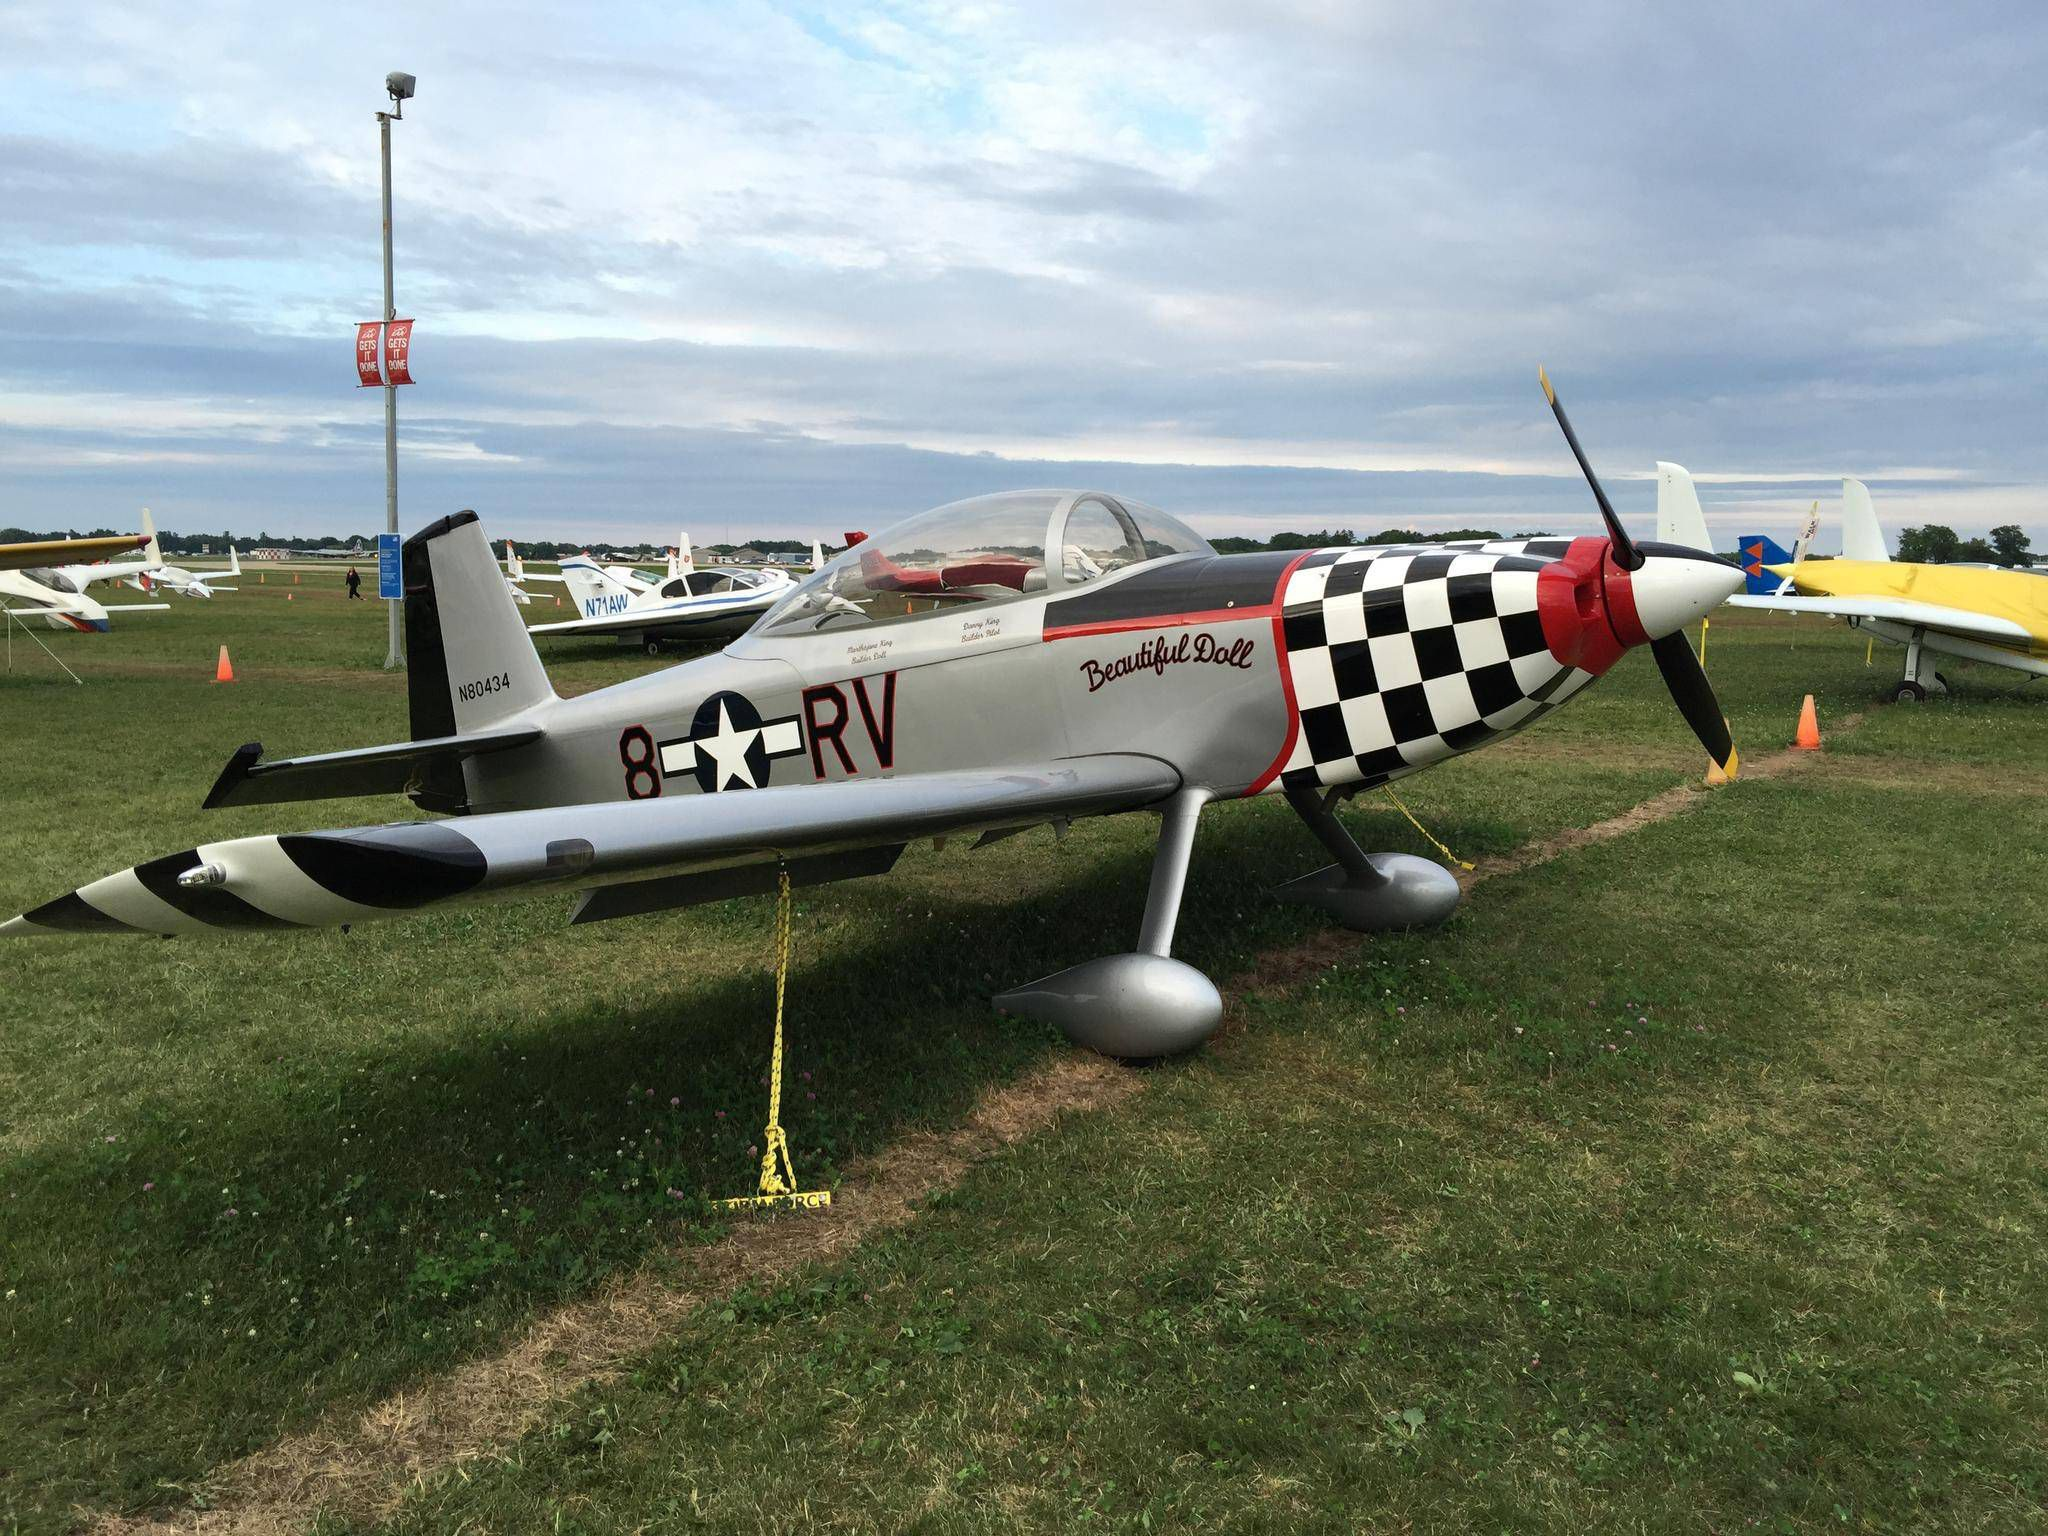 The ultimate DIY project: Build your own two-seater airplane – and